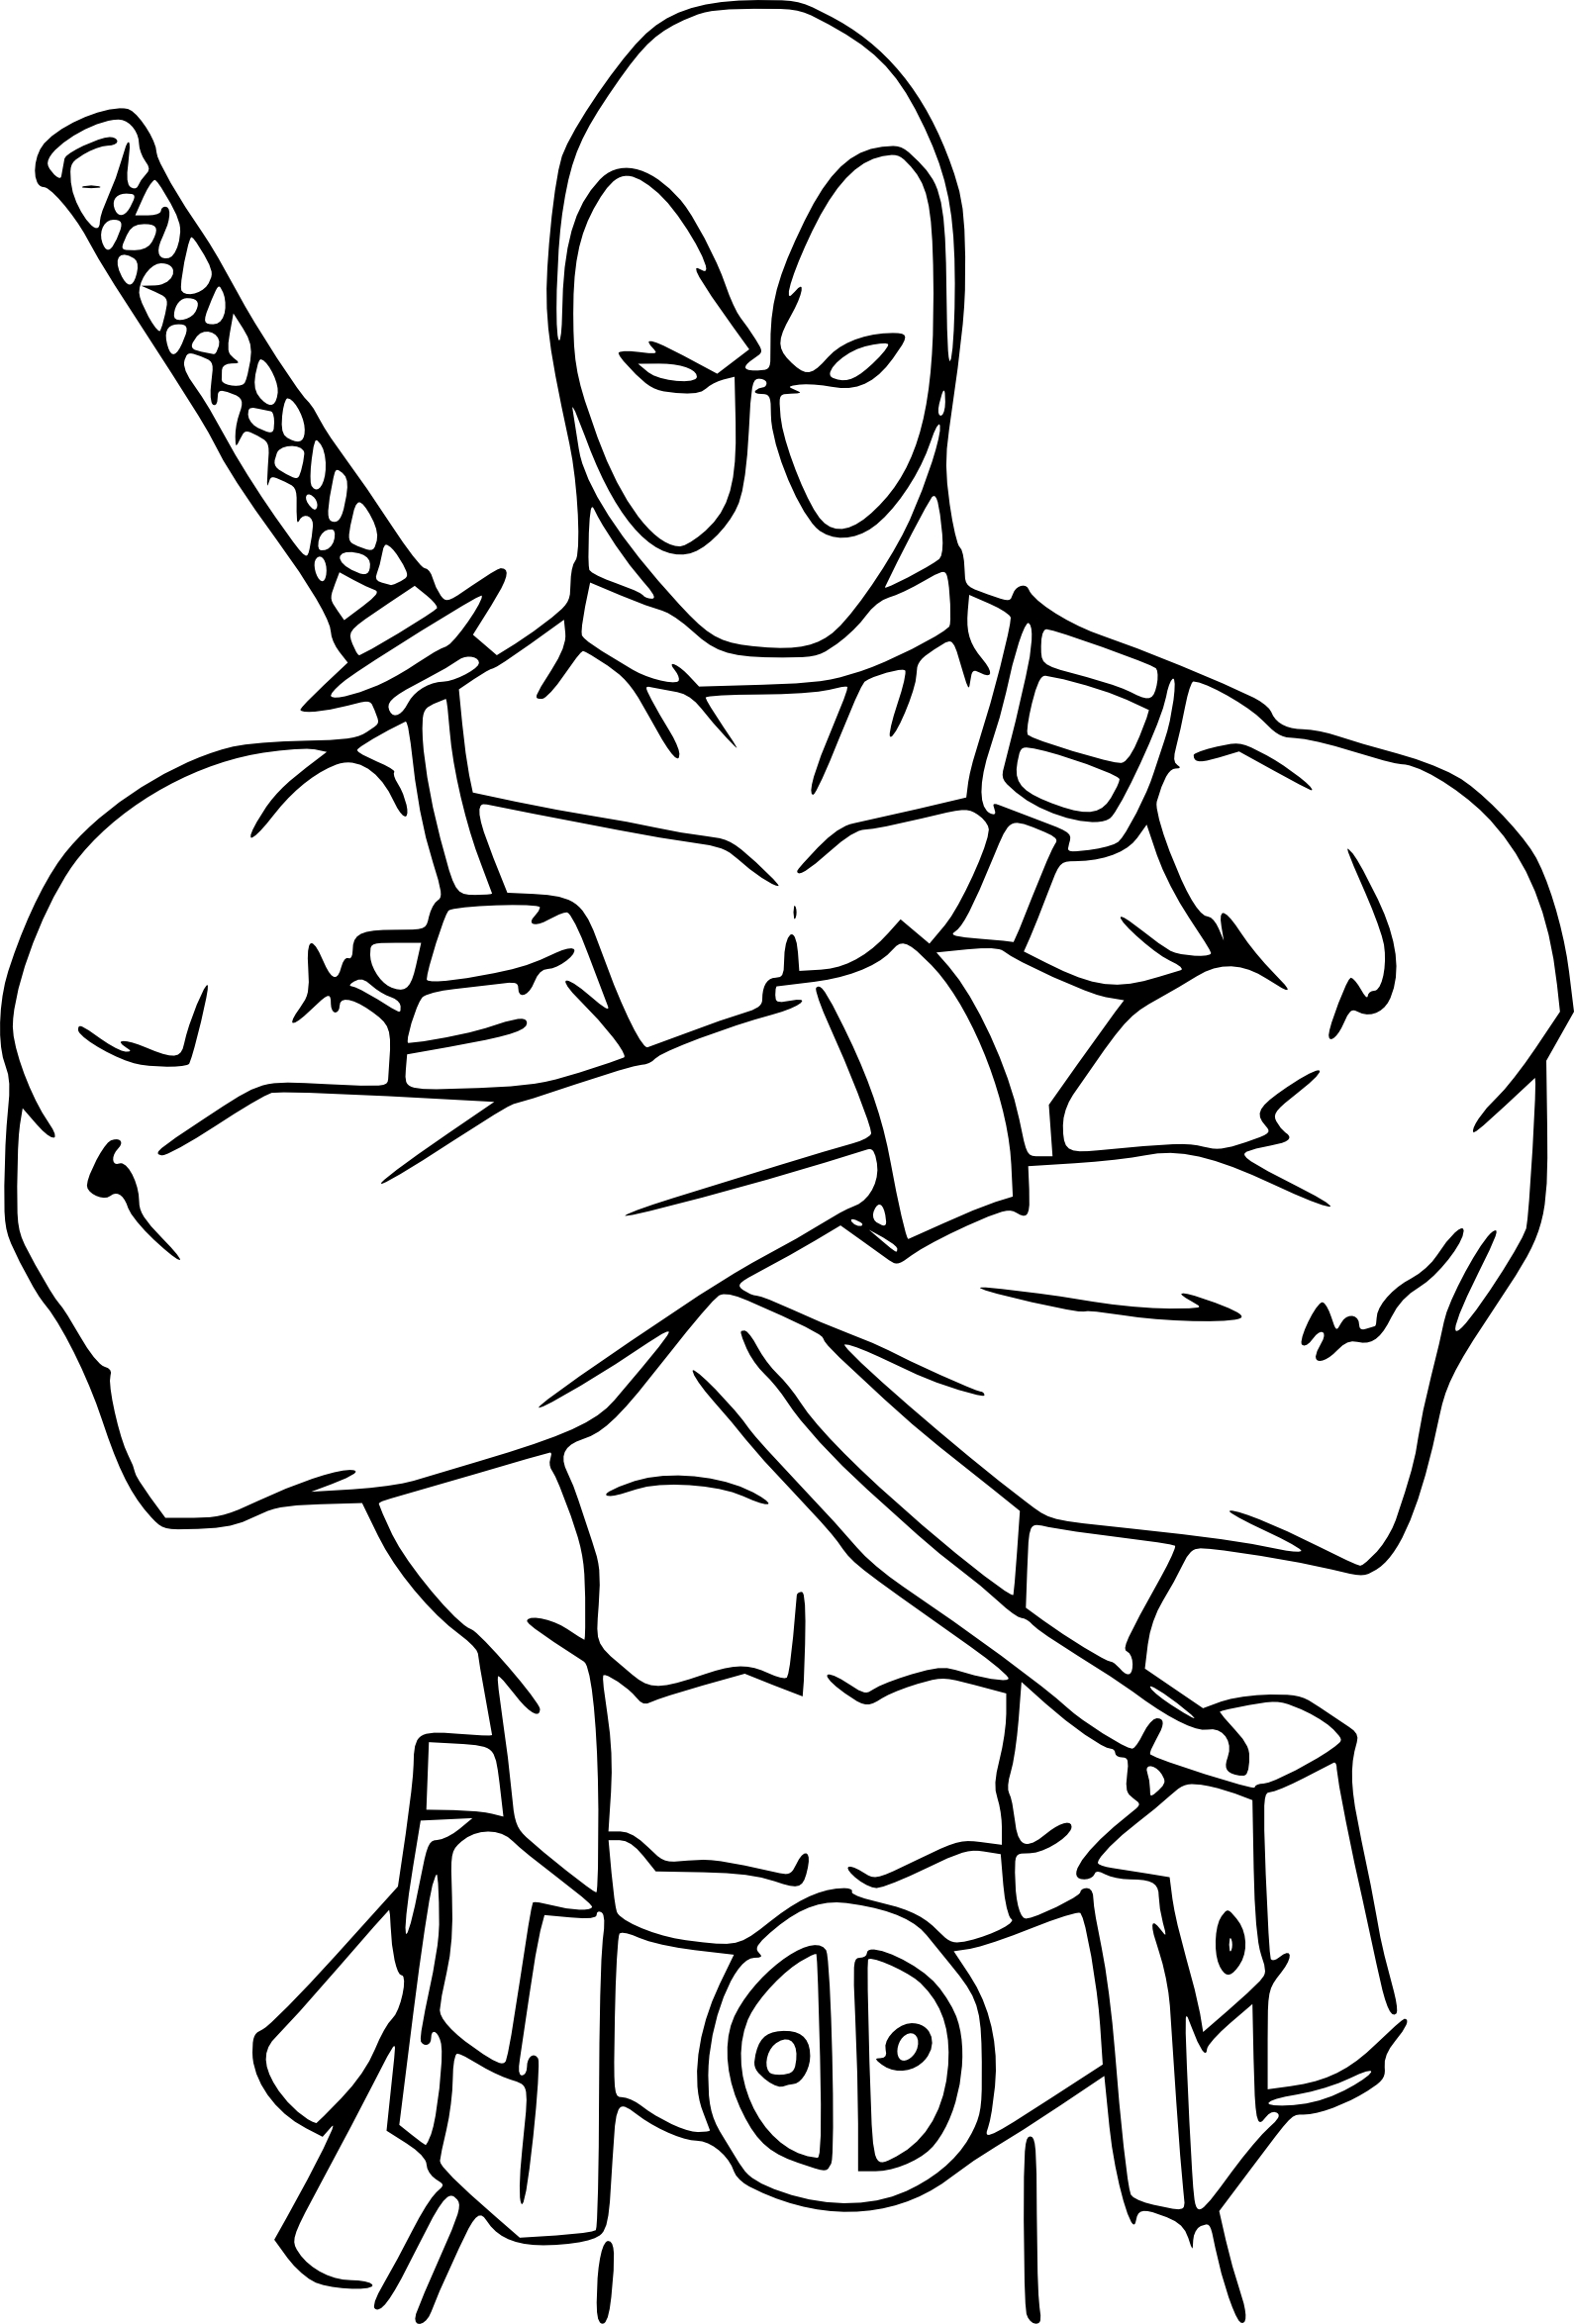 Coloriage deadpool imprimer - Dessin a imprimer de spiderman ...